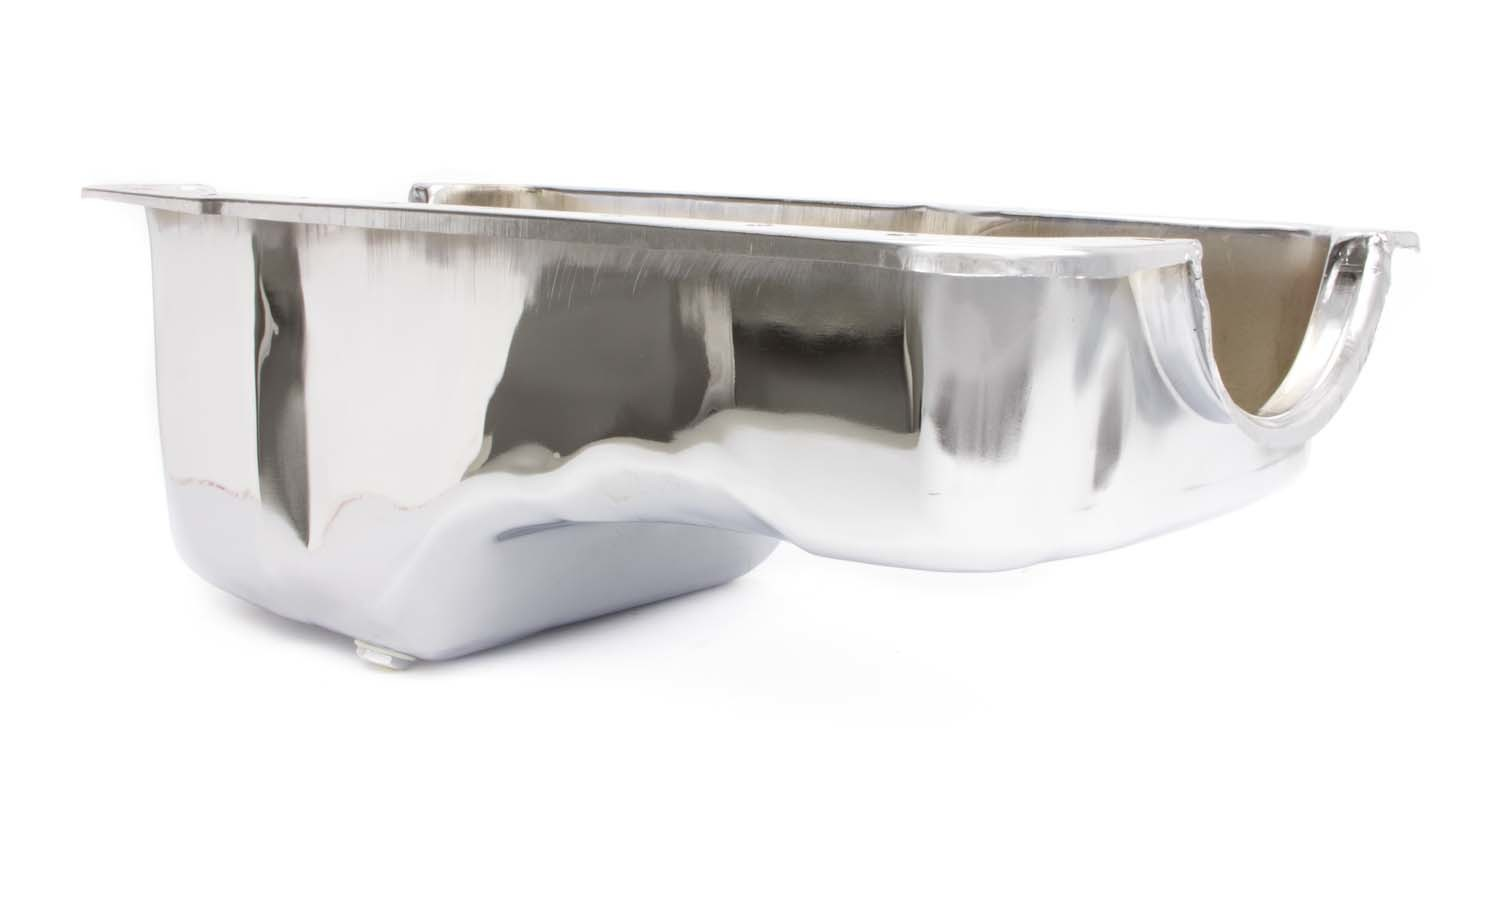 Racing Power Company R9078 Engine Oil Pan, Front Sump, Stock Depth, Steel, Chrome, Small Block Ford, Each